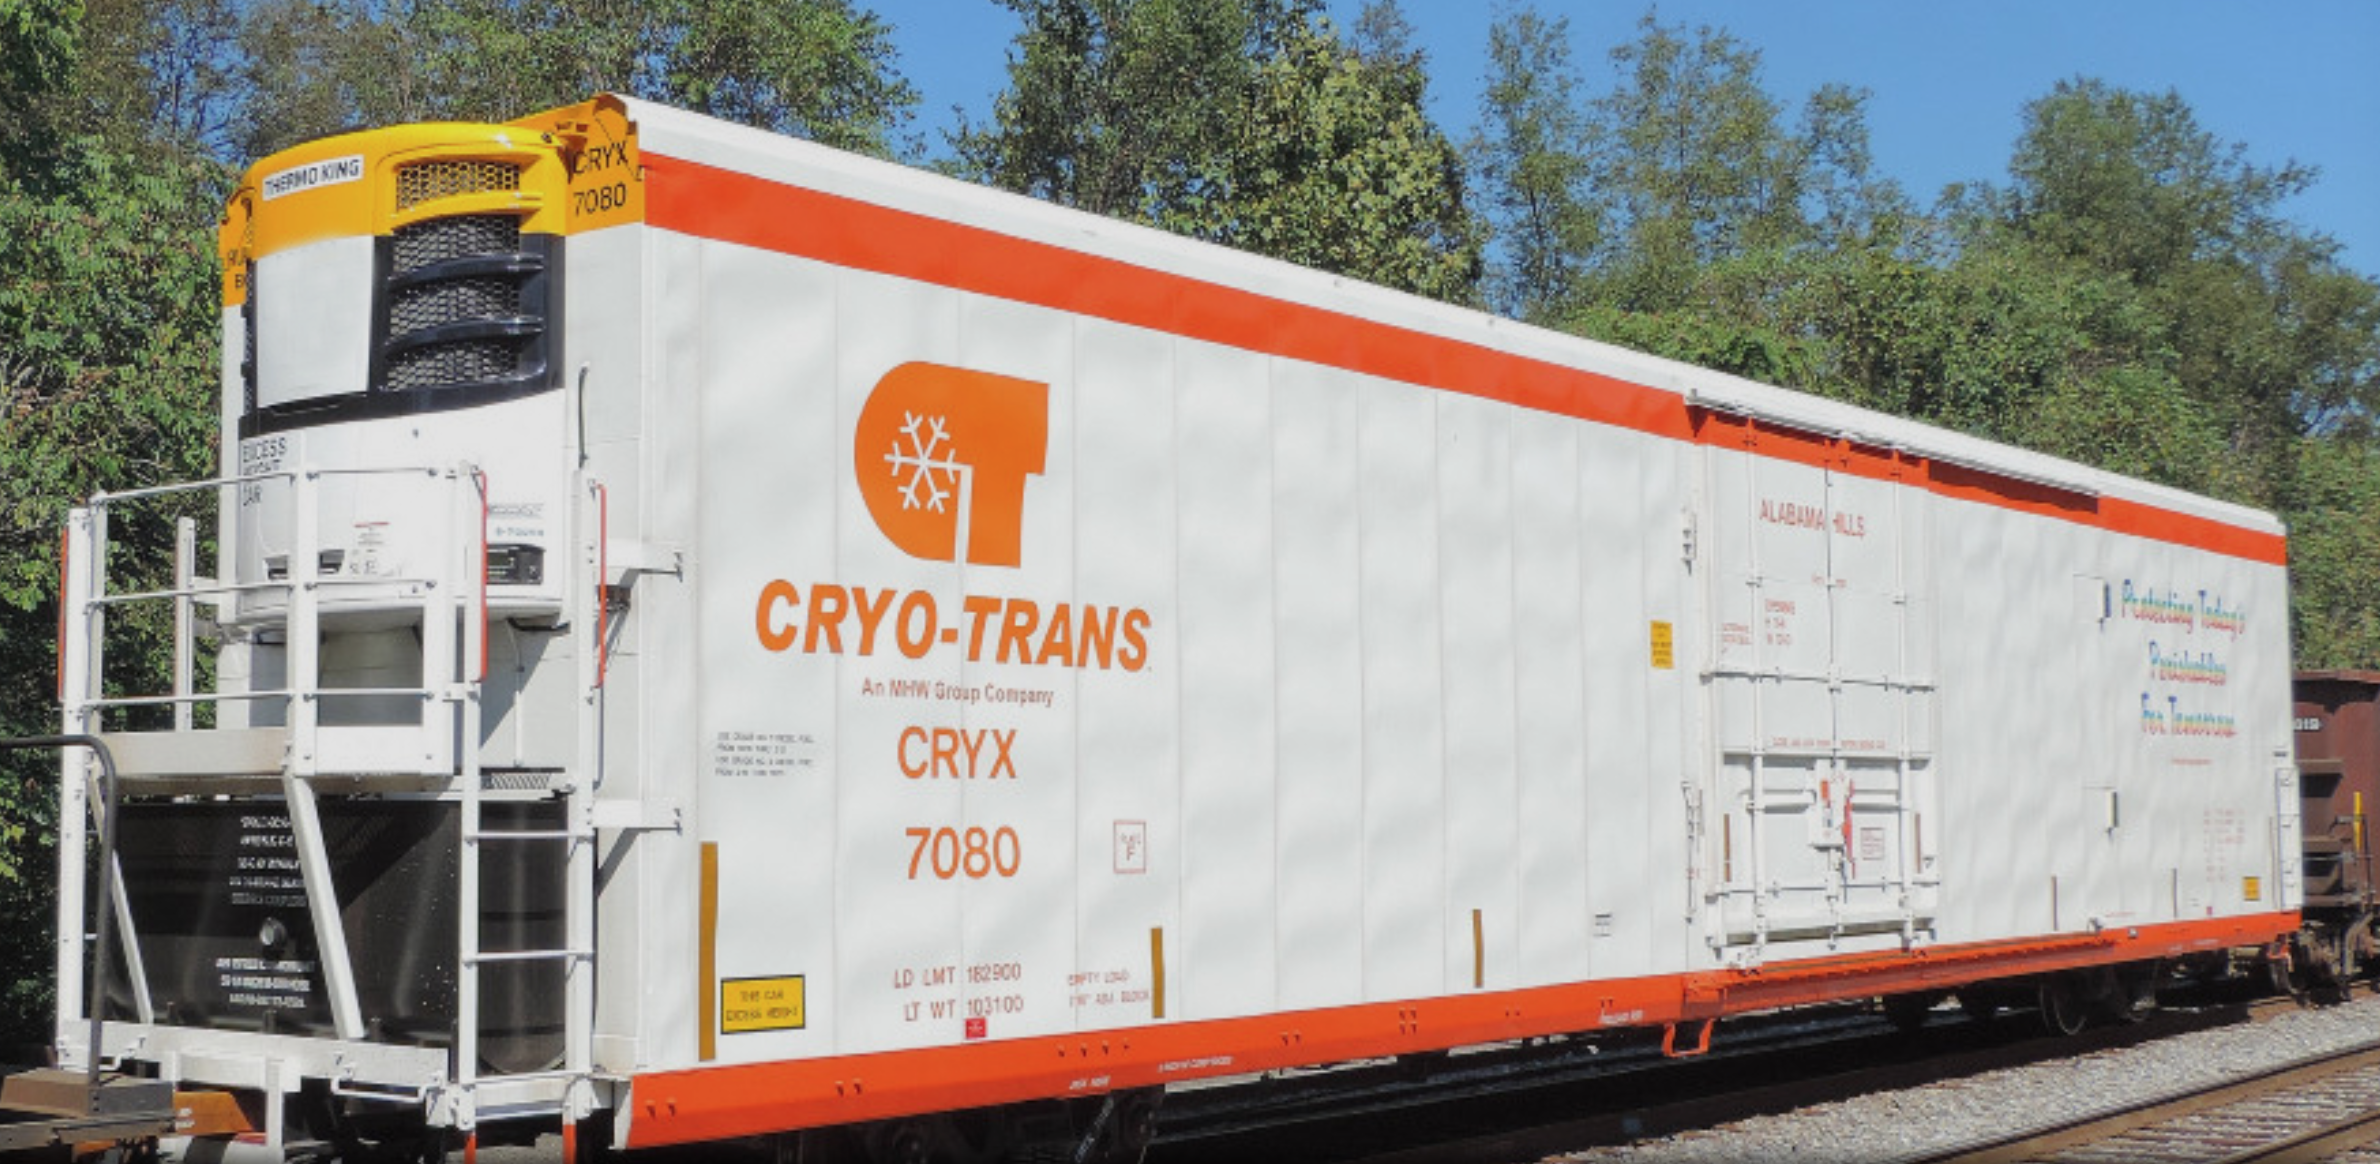 cryotrans train car